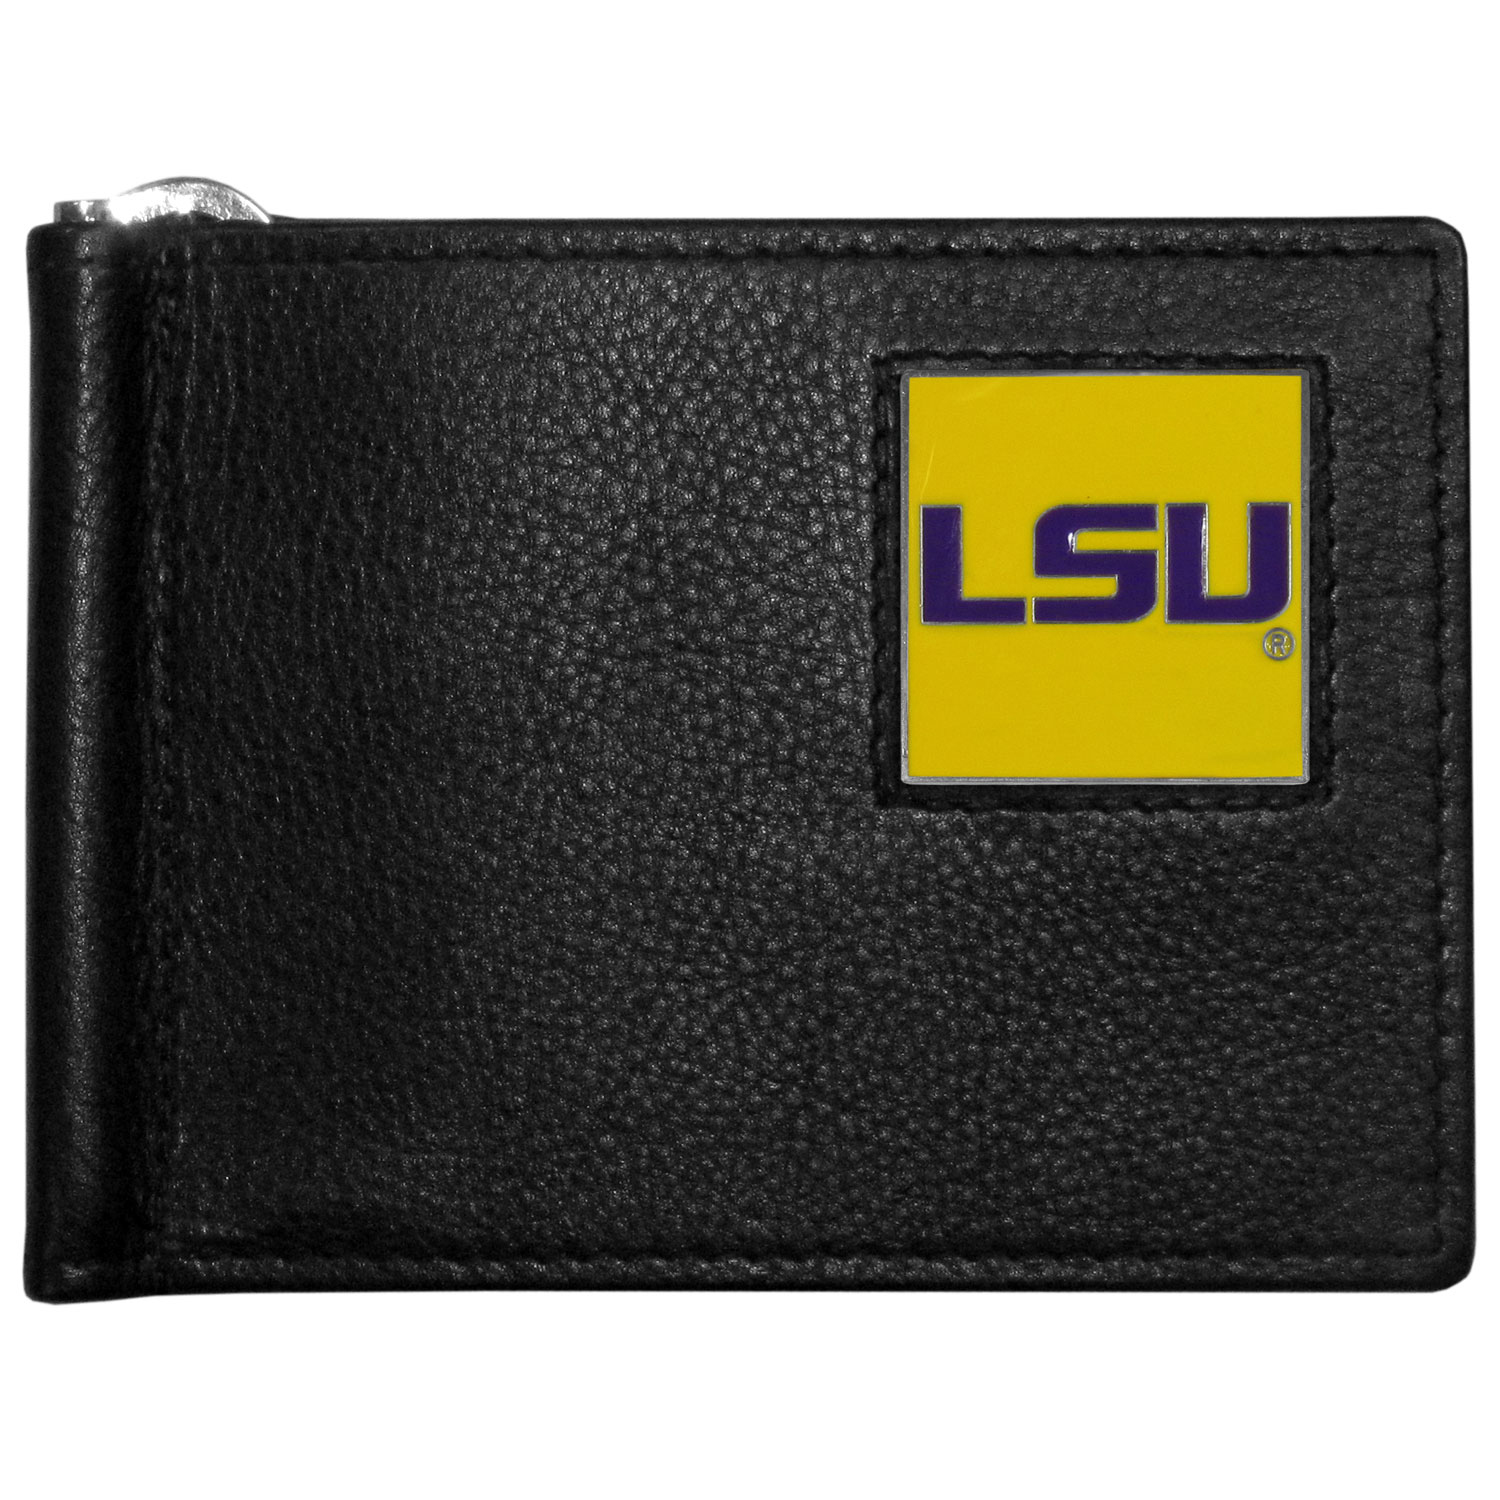 LSU Tigers Leather Bill Clip Wallet - This cool new style wallet features an inner, metal bill clip that lips up for easy access. The super slim wallet holds tons of stuff with ample pockets, credit card slots & windowed ID slot. The wallet is made of genuine fine grain leather and it finished with a metal LSU Tigers emblem. The wallet is shipped in gift box packaging.